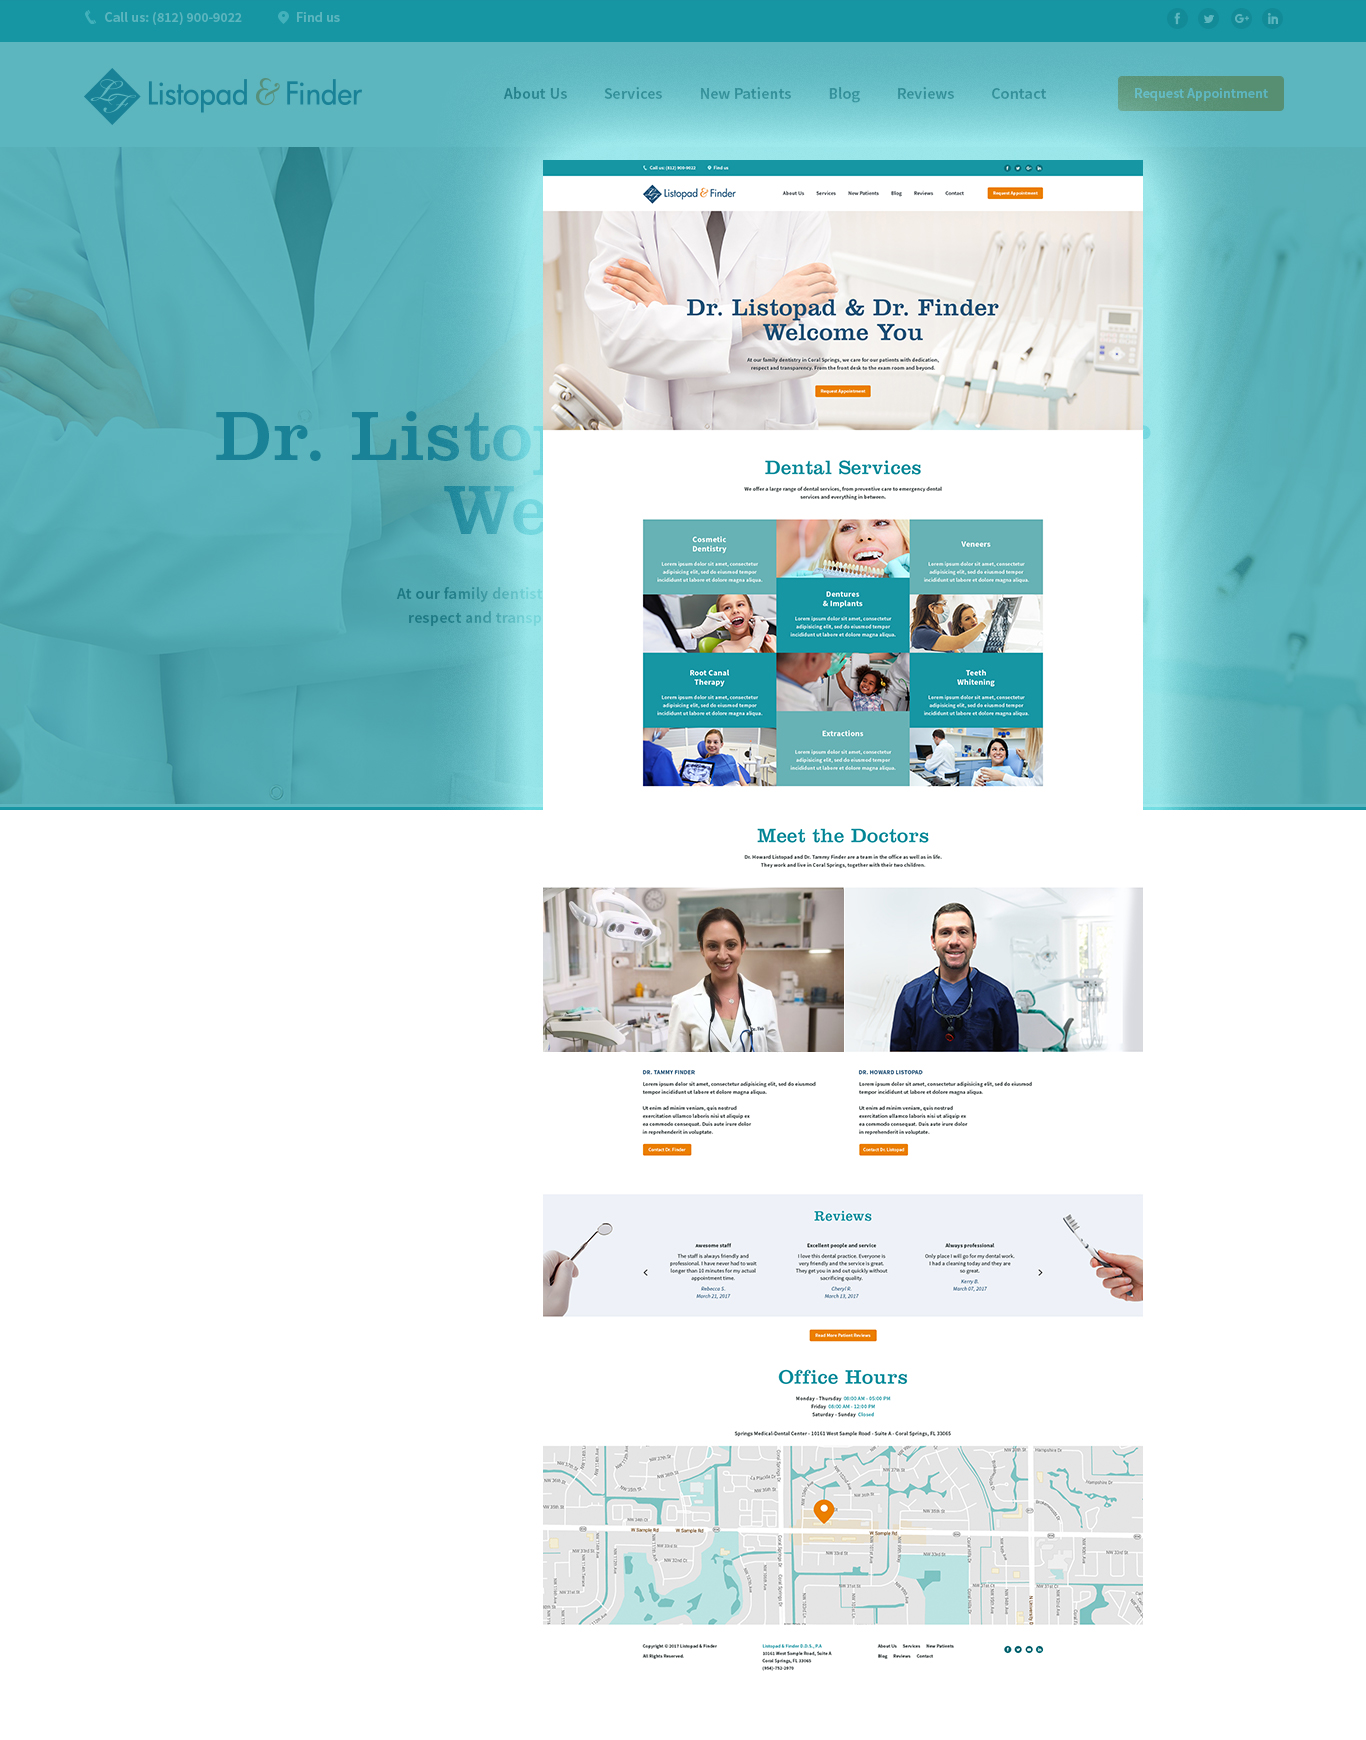 Listopad & Finder dental practice website